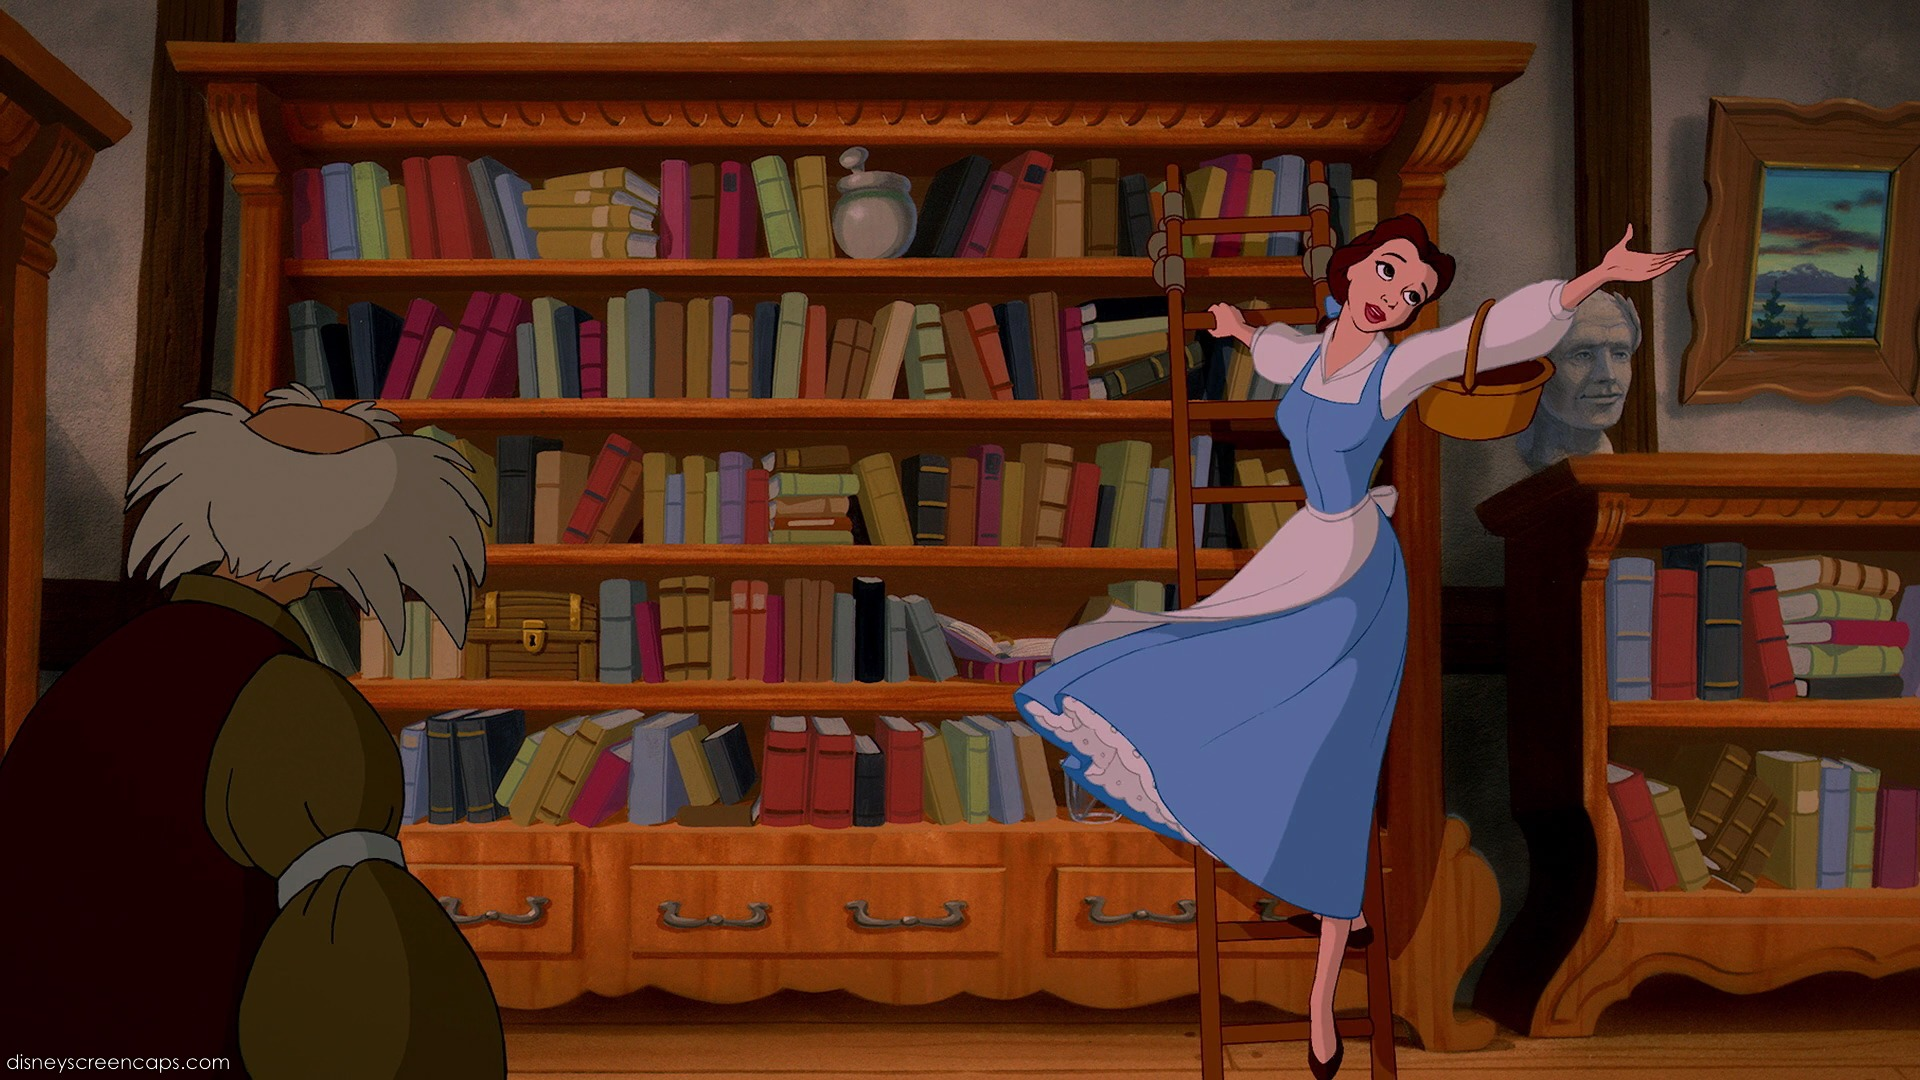 Can You Match Each Disney Movie With Its Background